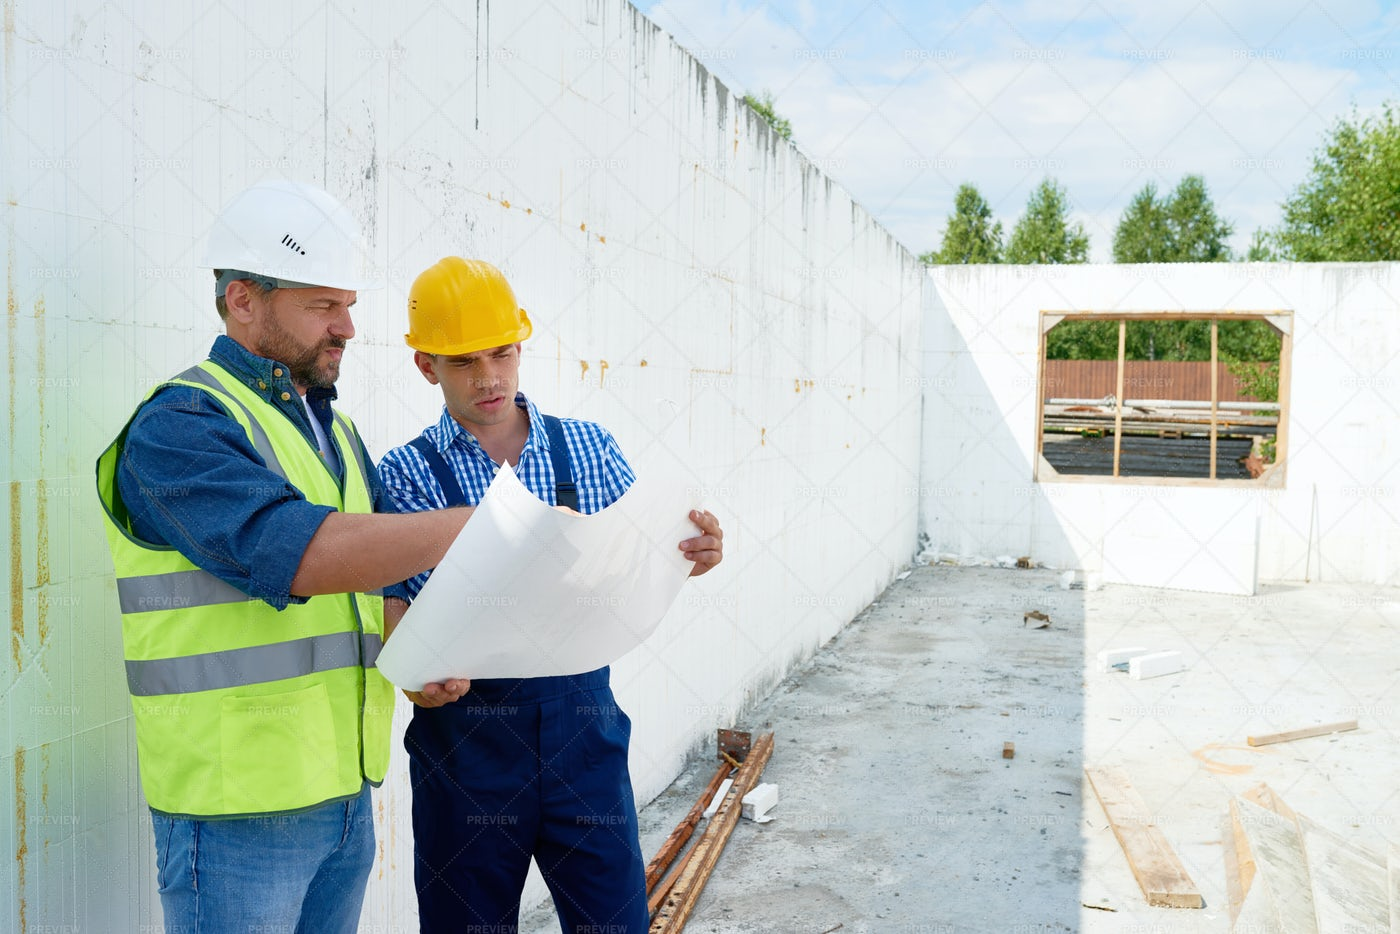 Construction Worker Discussing...: Stock Photos